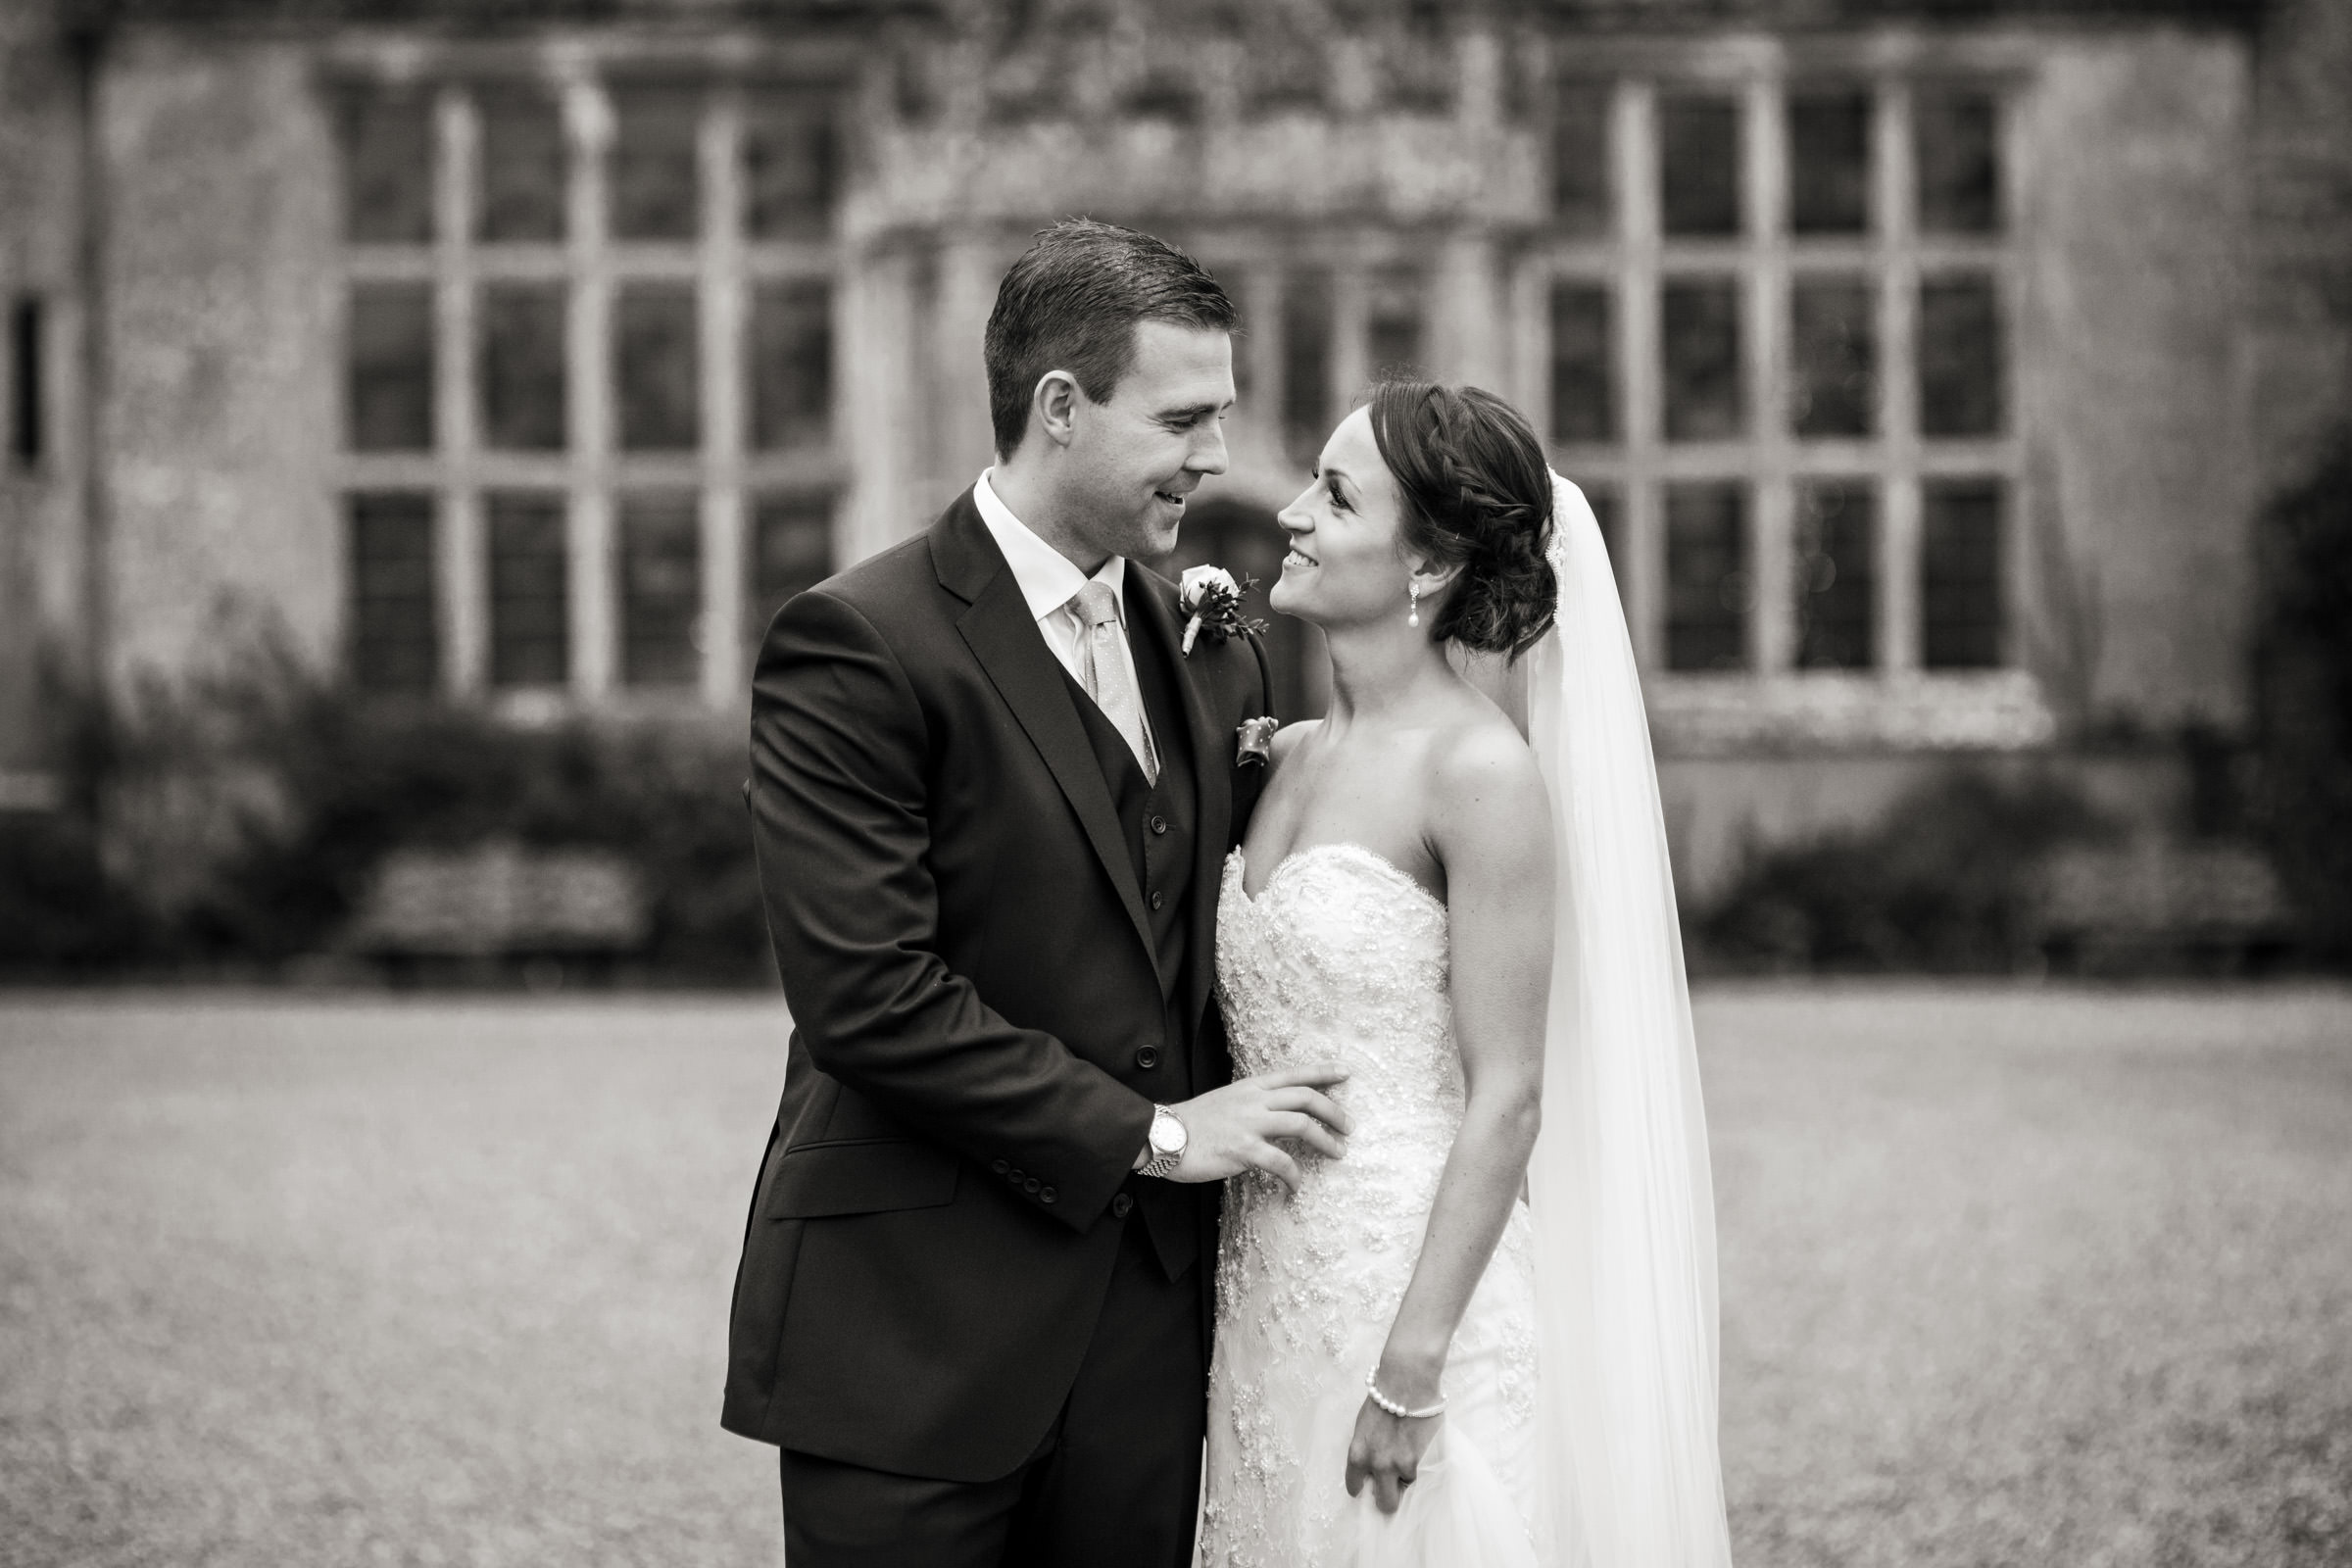 Wedding Photos At Brympton House In Somerset 024.jpg